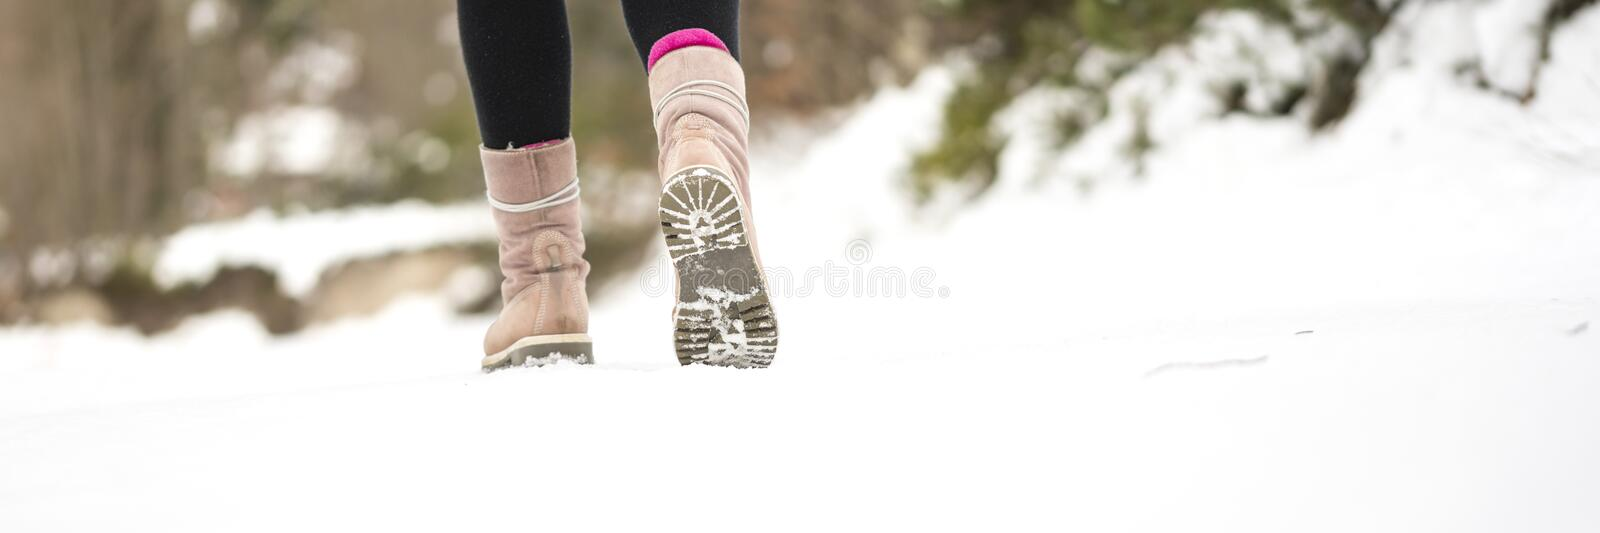 Winter adventures - closeup of warm female winter boots walking stock photo